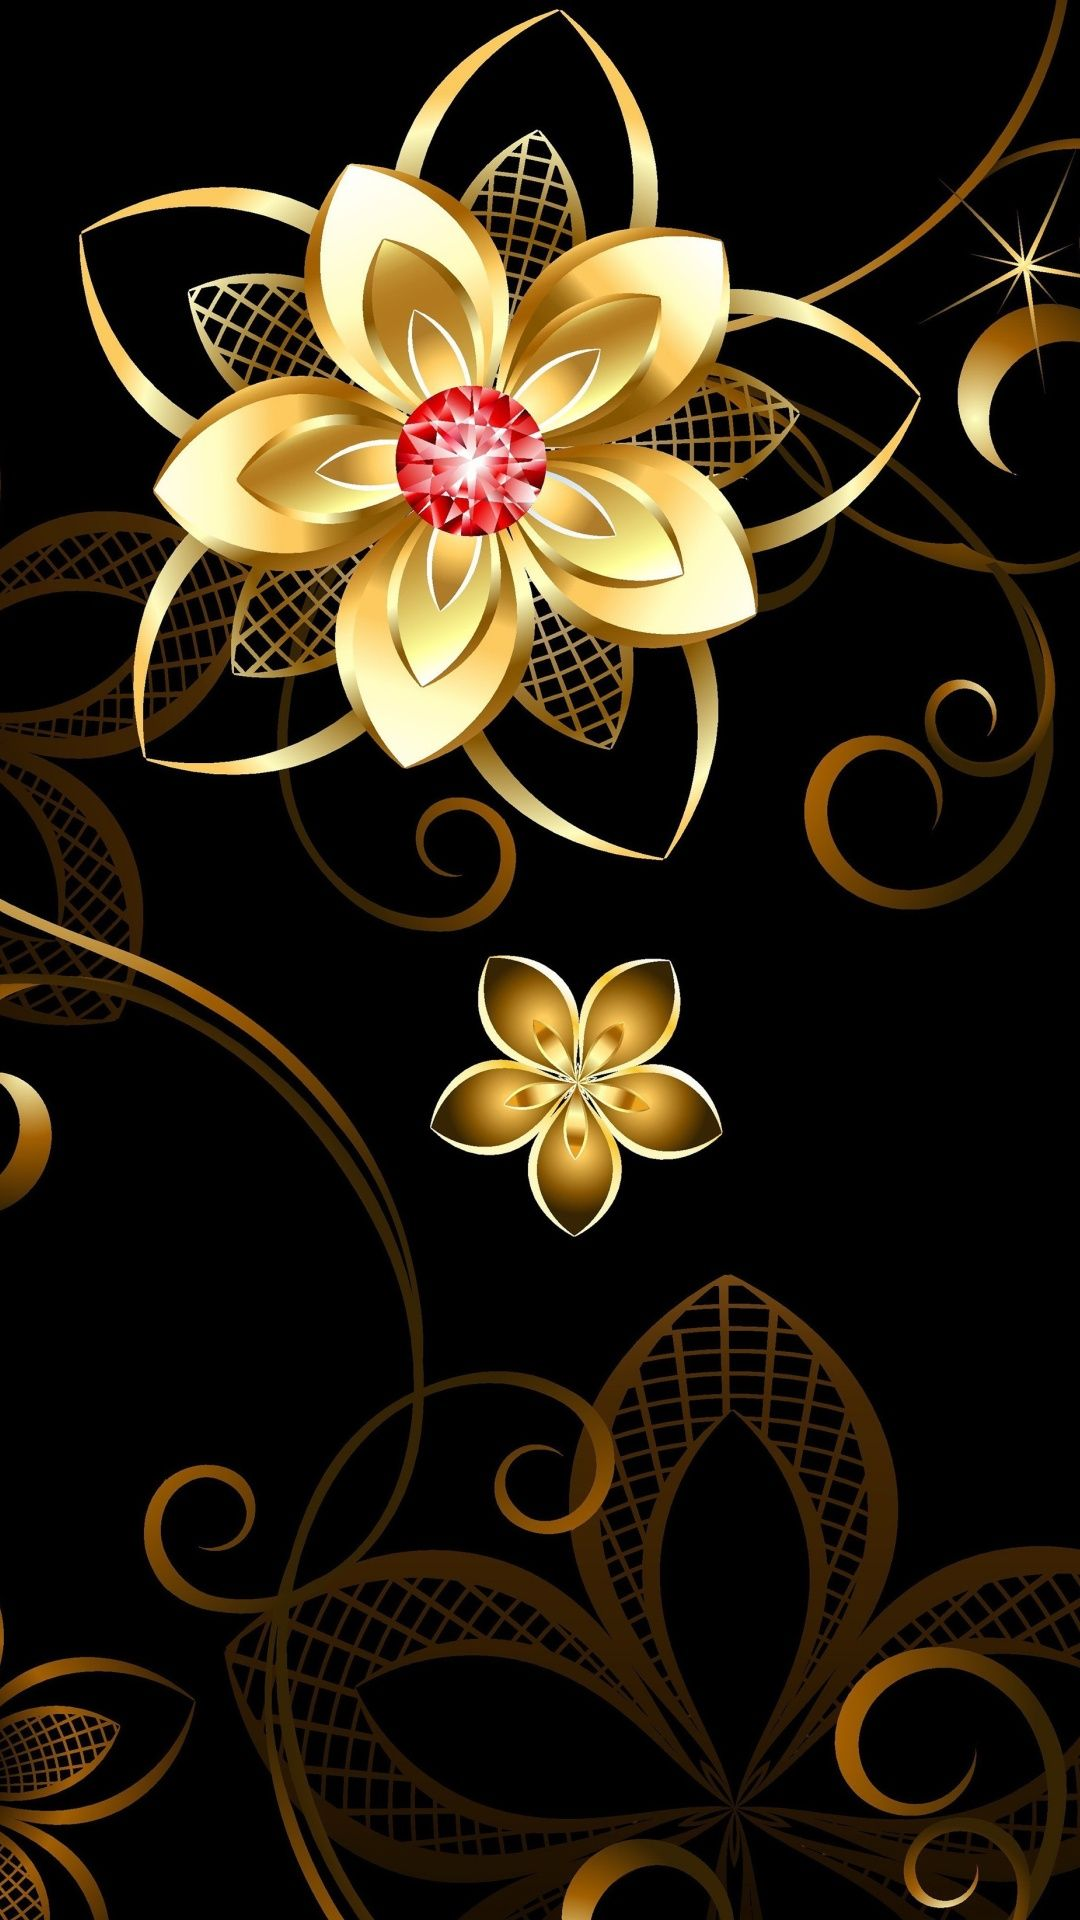 Awesome High Definition 3d Wallpapers For Desktop Golden Flower Check More At Finewallpaperseu Pin 18206